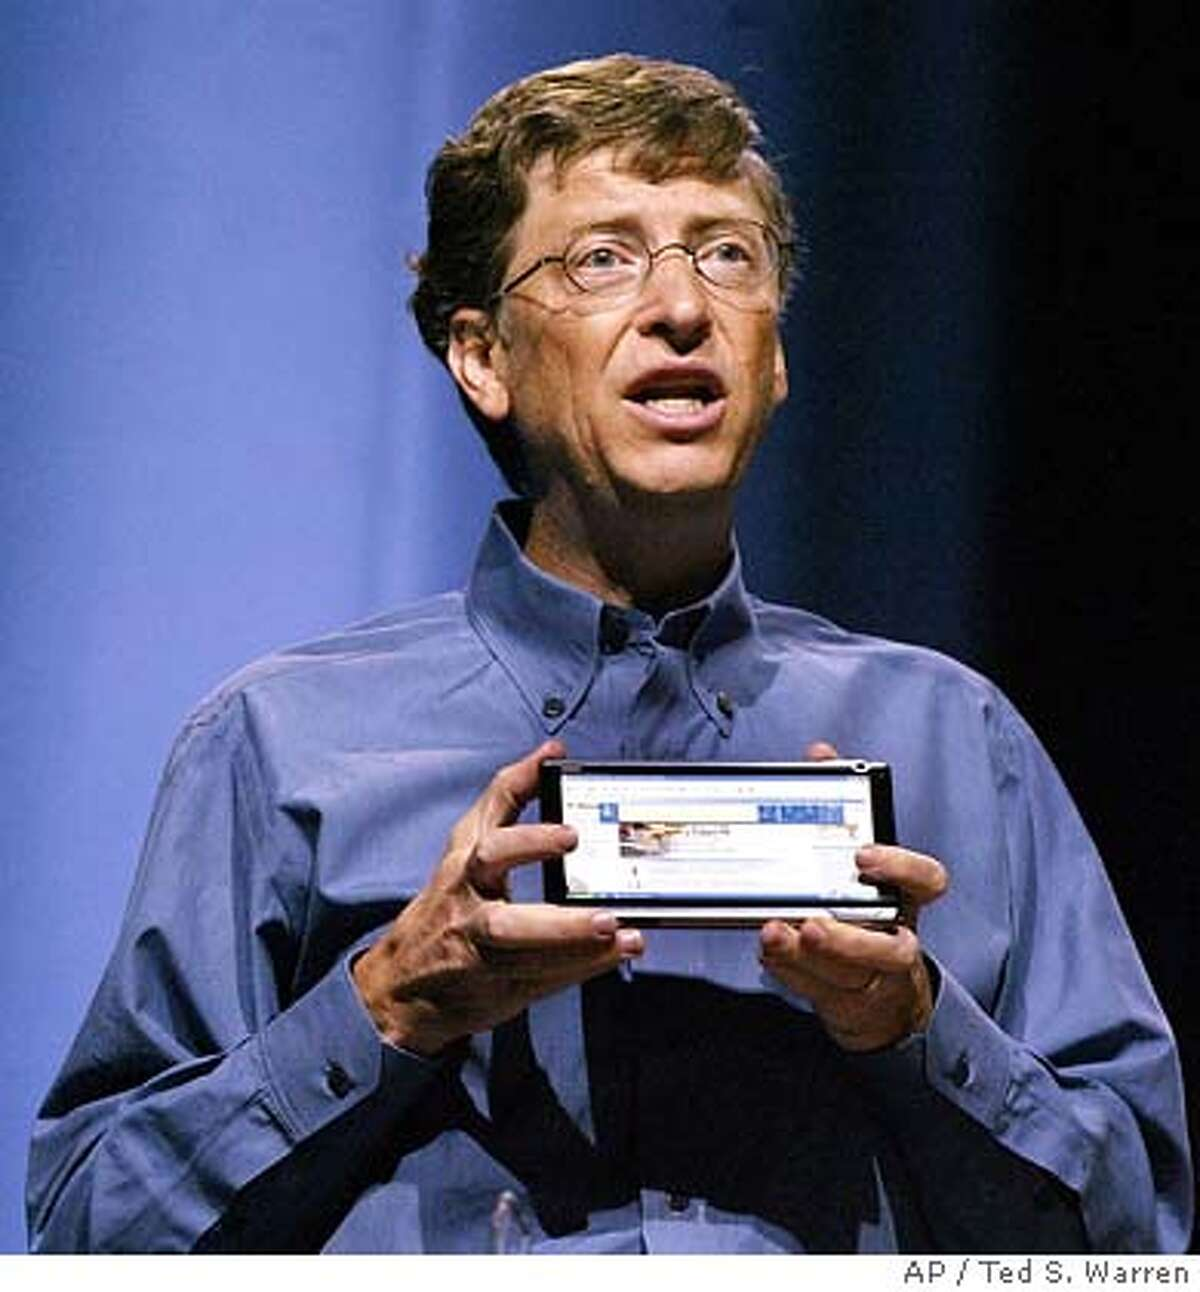 Microsoft Corp. Chairman Bill Gates holds a model of an ultra-mobile concept PC Monday, April 25, 2005 in Seattle that he said was a futuristic example of the use of Windows Operating System technology. Gates delivered the opening keynote address at the 2005 Microsoft Windows Hardware Engineering Conference. (AP Photo/Ted S. Warren)